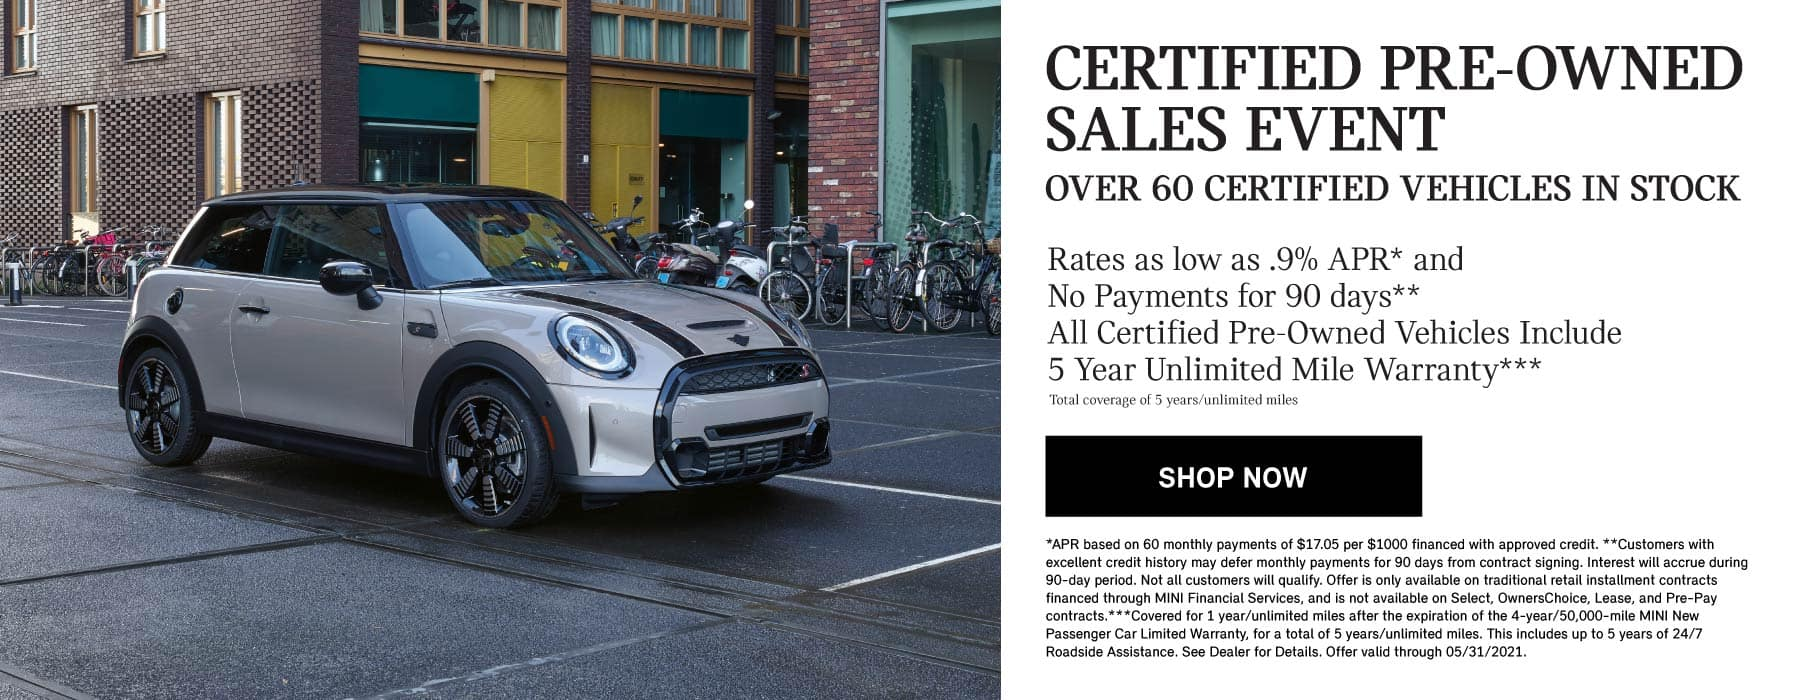 Certified Pre-Owned Sales Event over 60 certified vehicles in stock | Shop Now